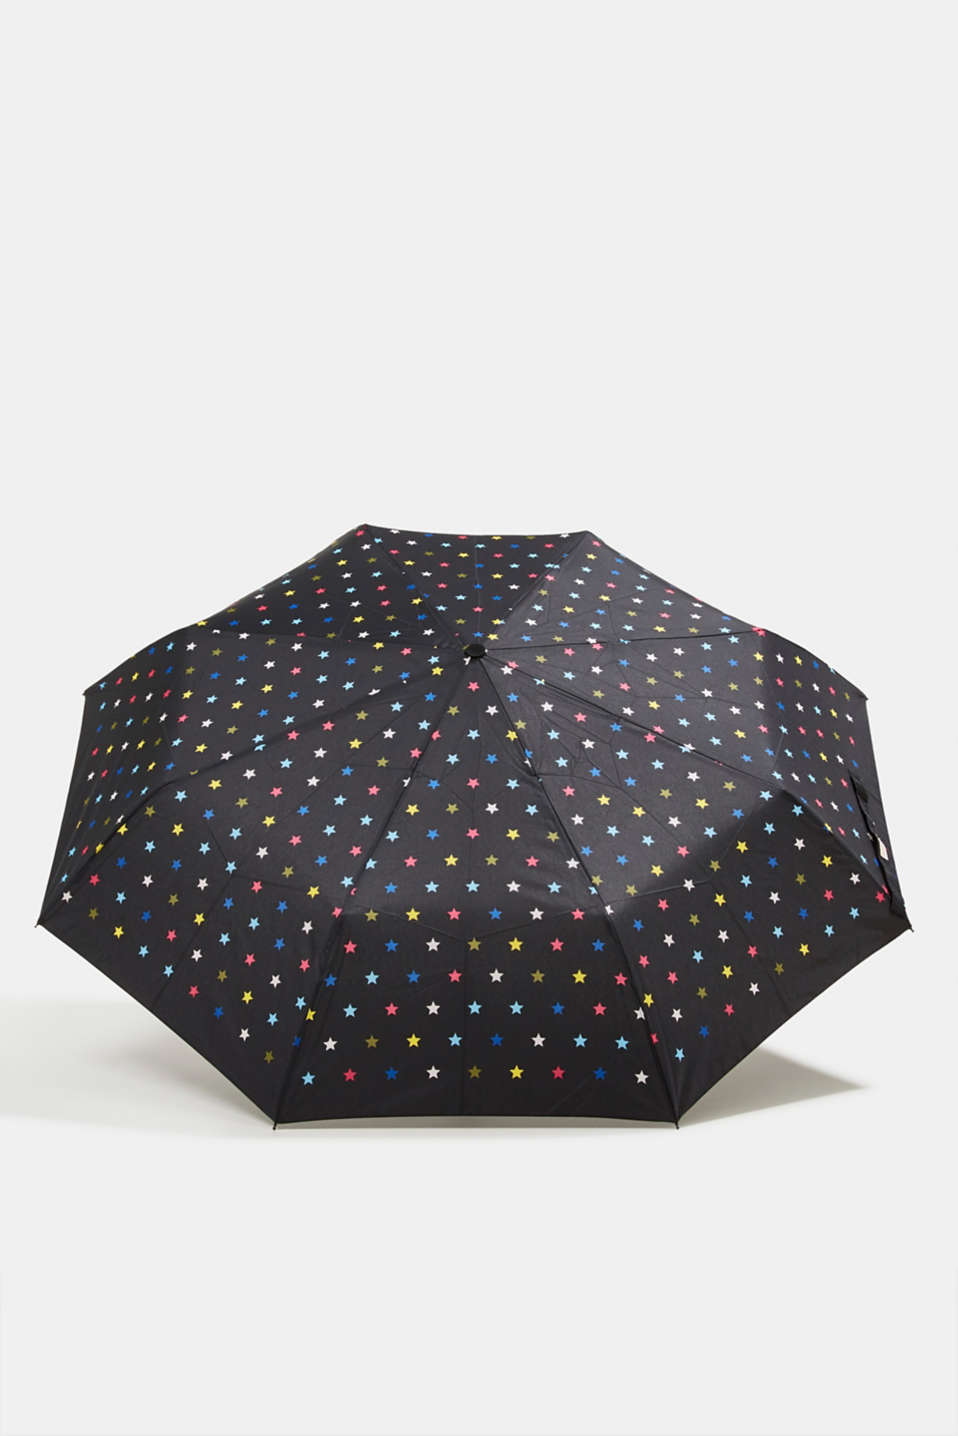 Esprit - Pocket umbrella with matching shopper